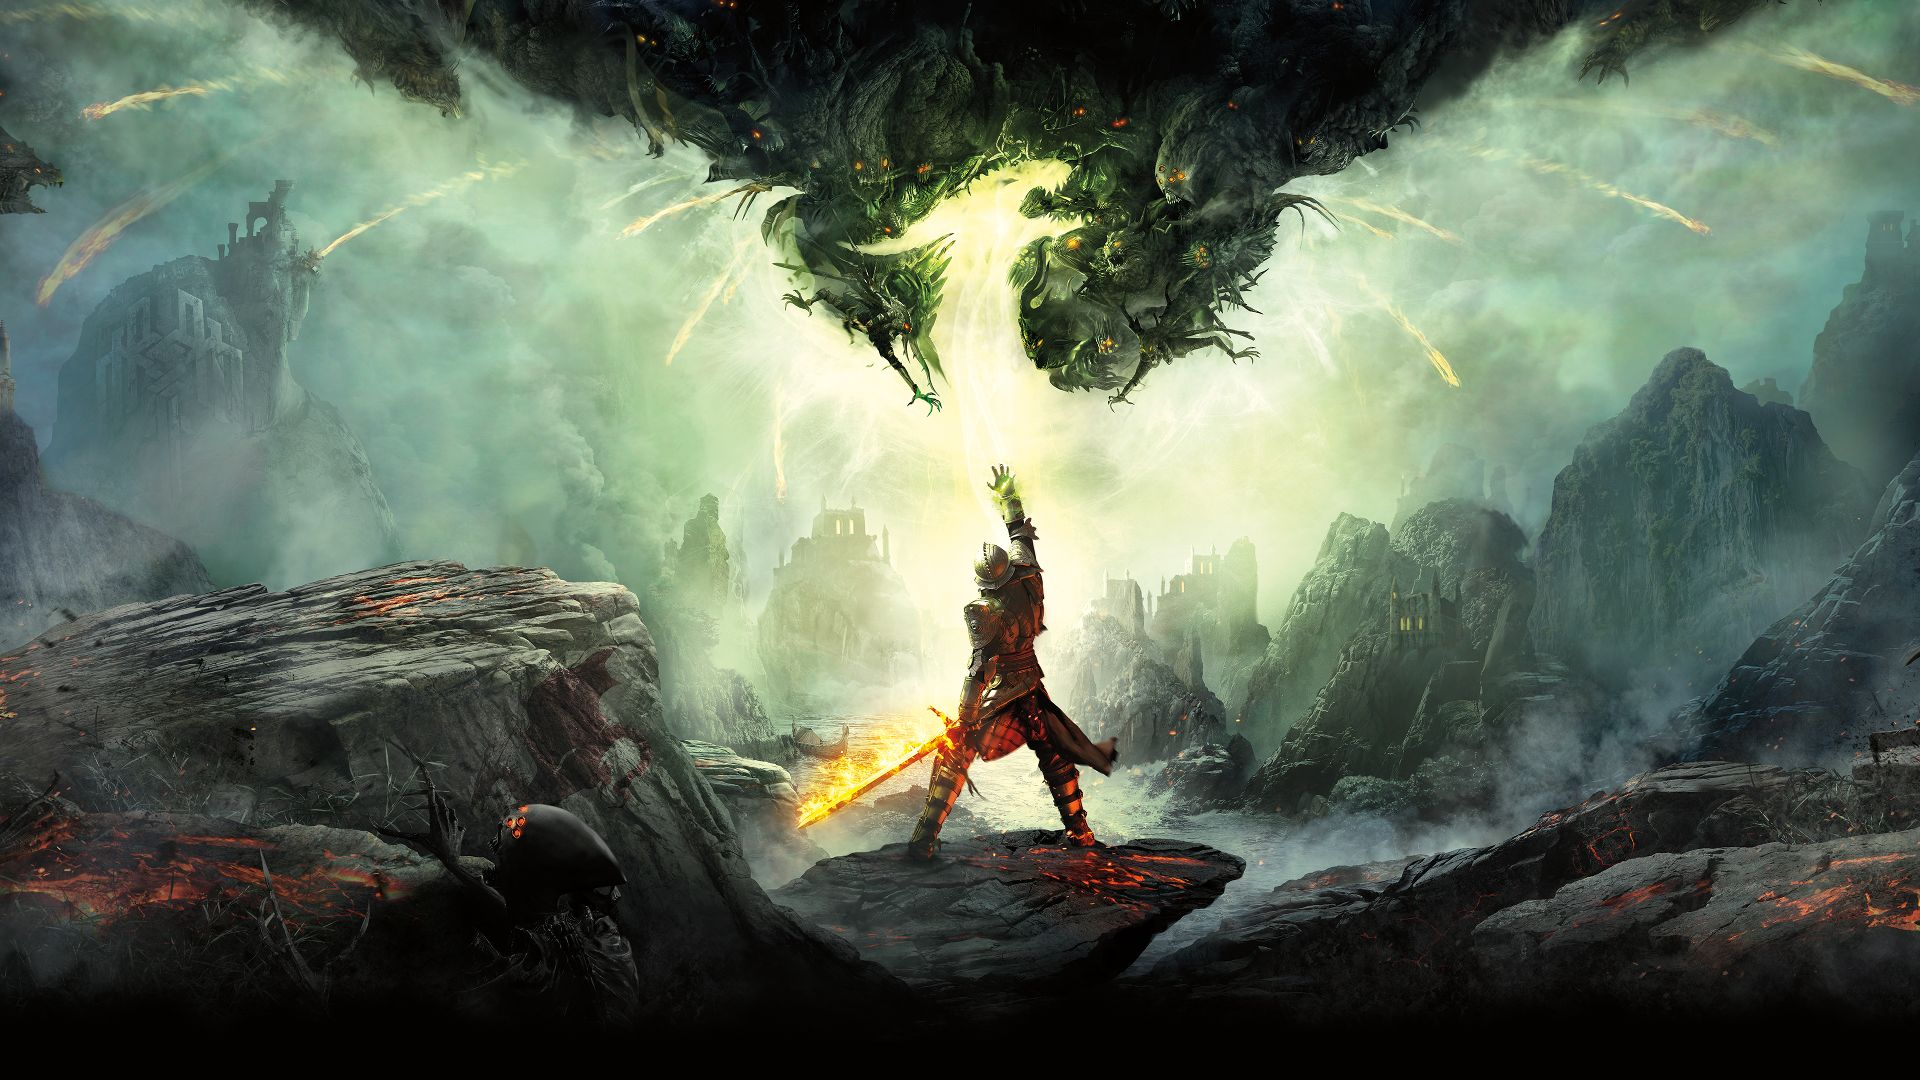 BioWare Confirms New Dragon Age Game Is Still In Development